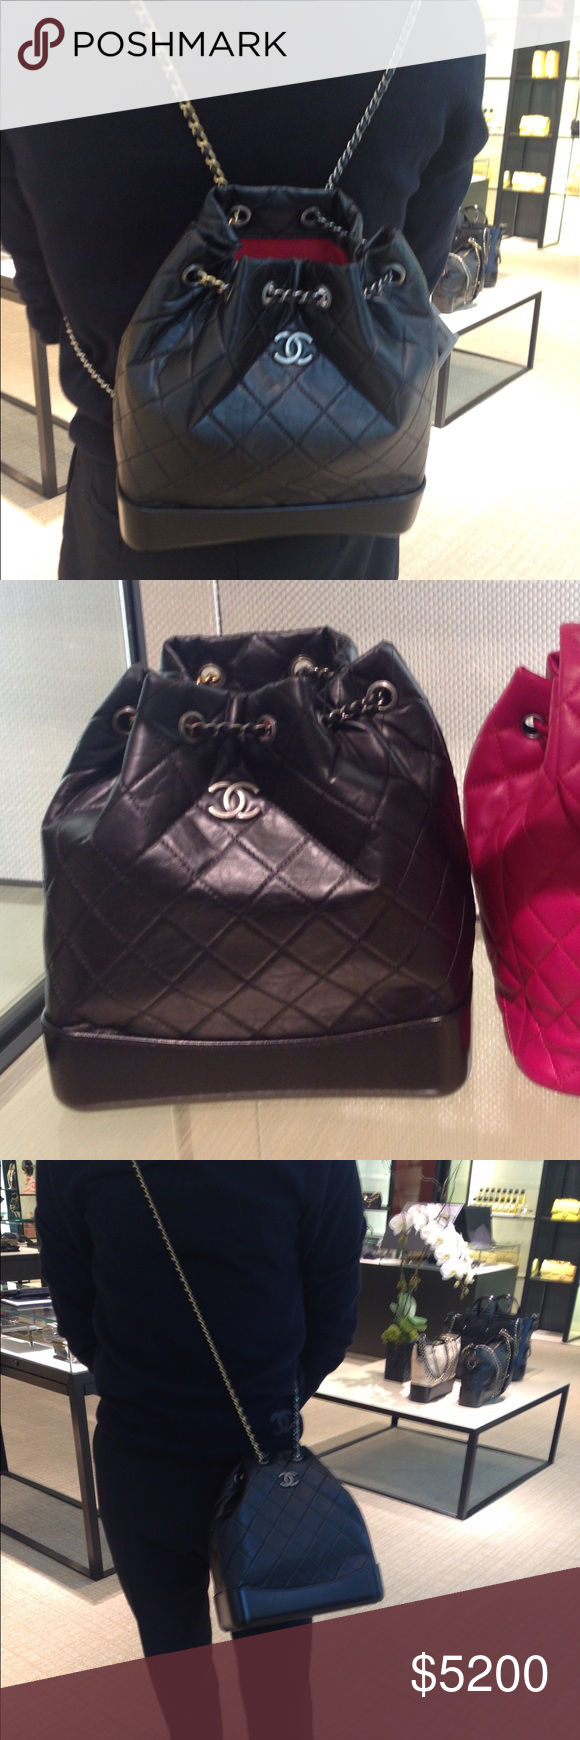 100% Auth Chanel Gabrielle Backpack. Large Size Brand New Size Large!!  Gabrielle Backpack. Just arrived for Pre-Fall. Black , with multi colored  hardwares. 730ecff190b